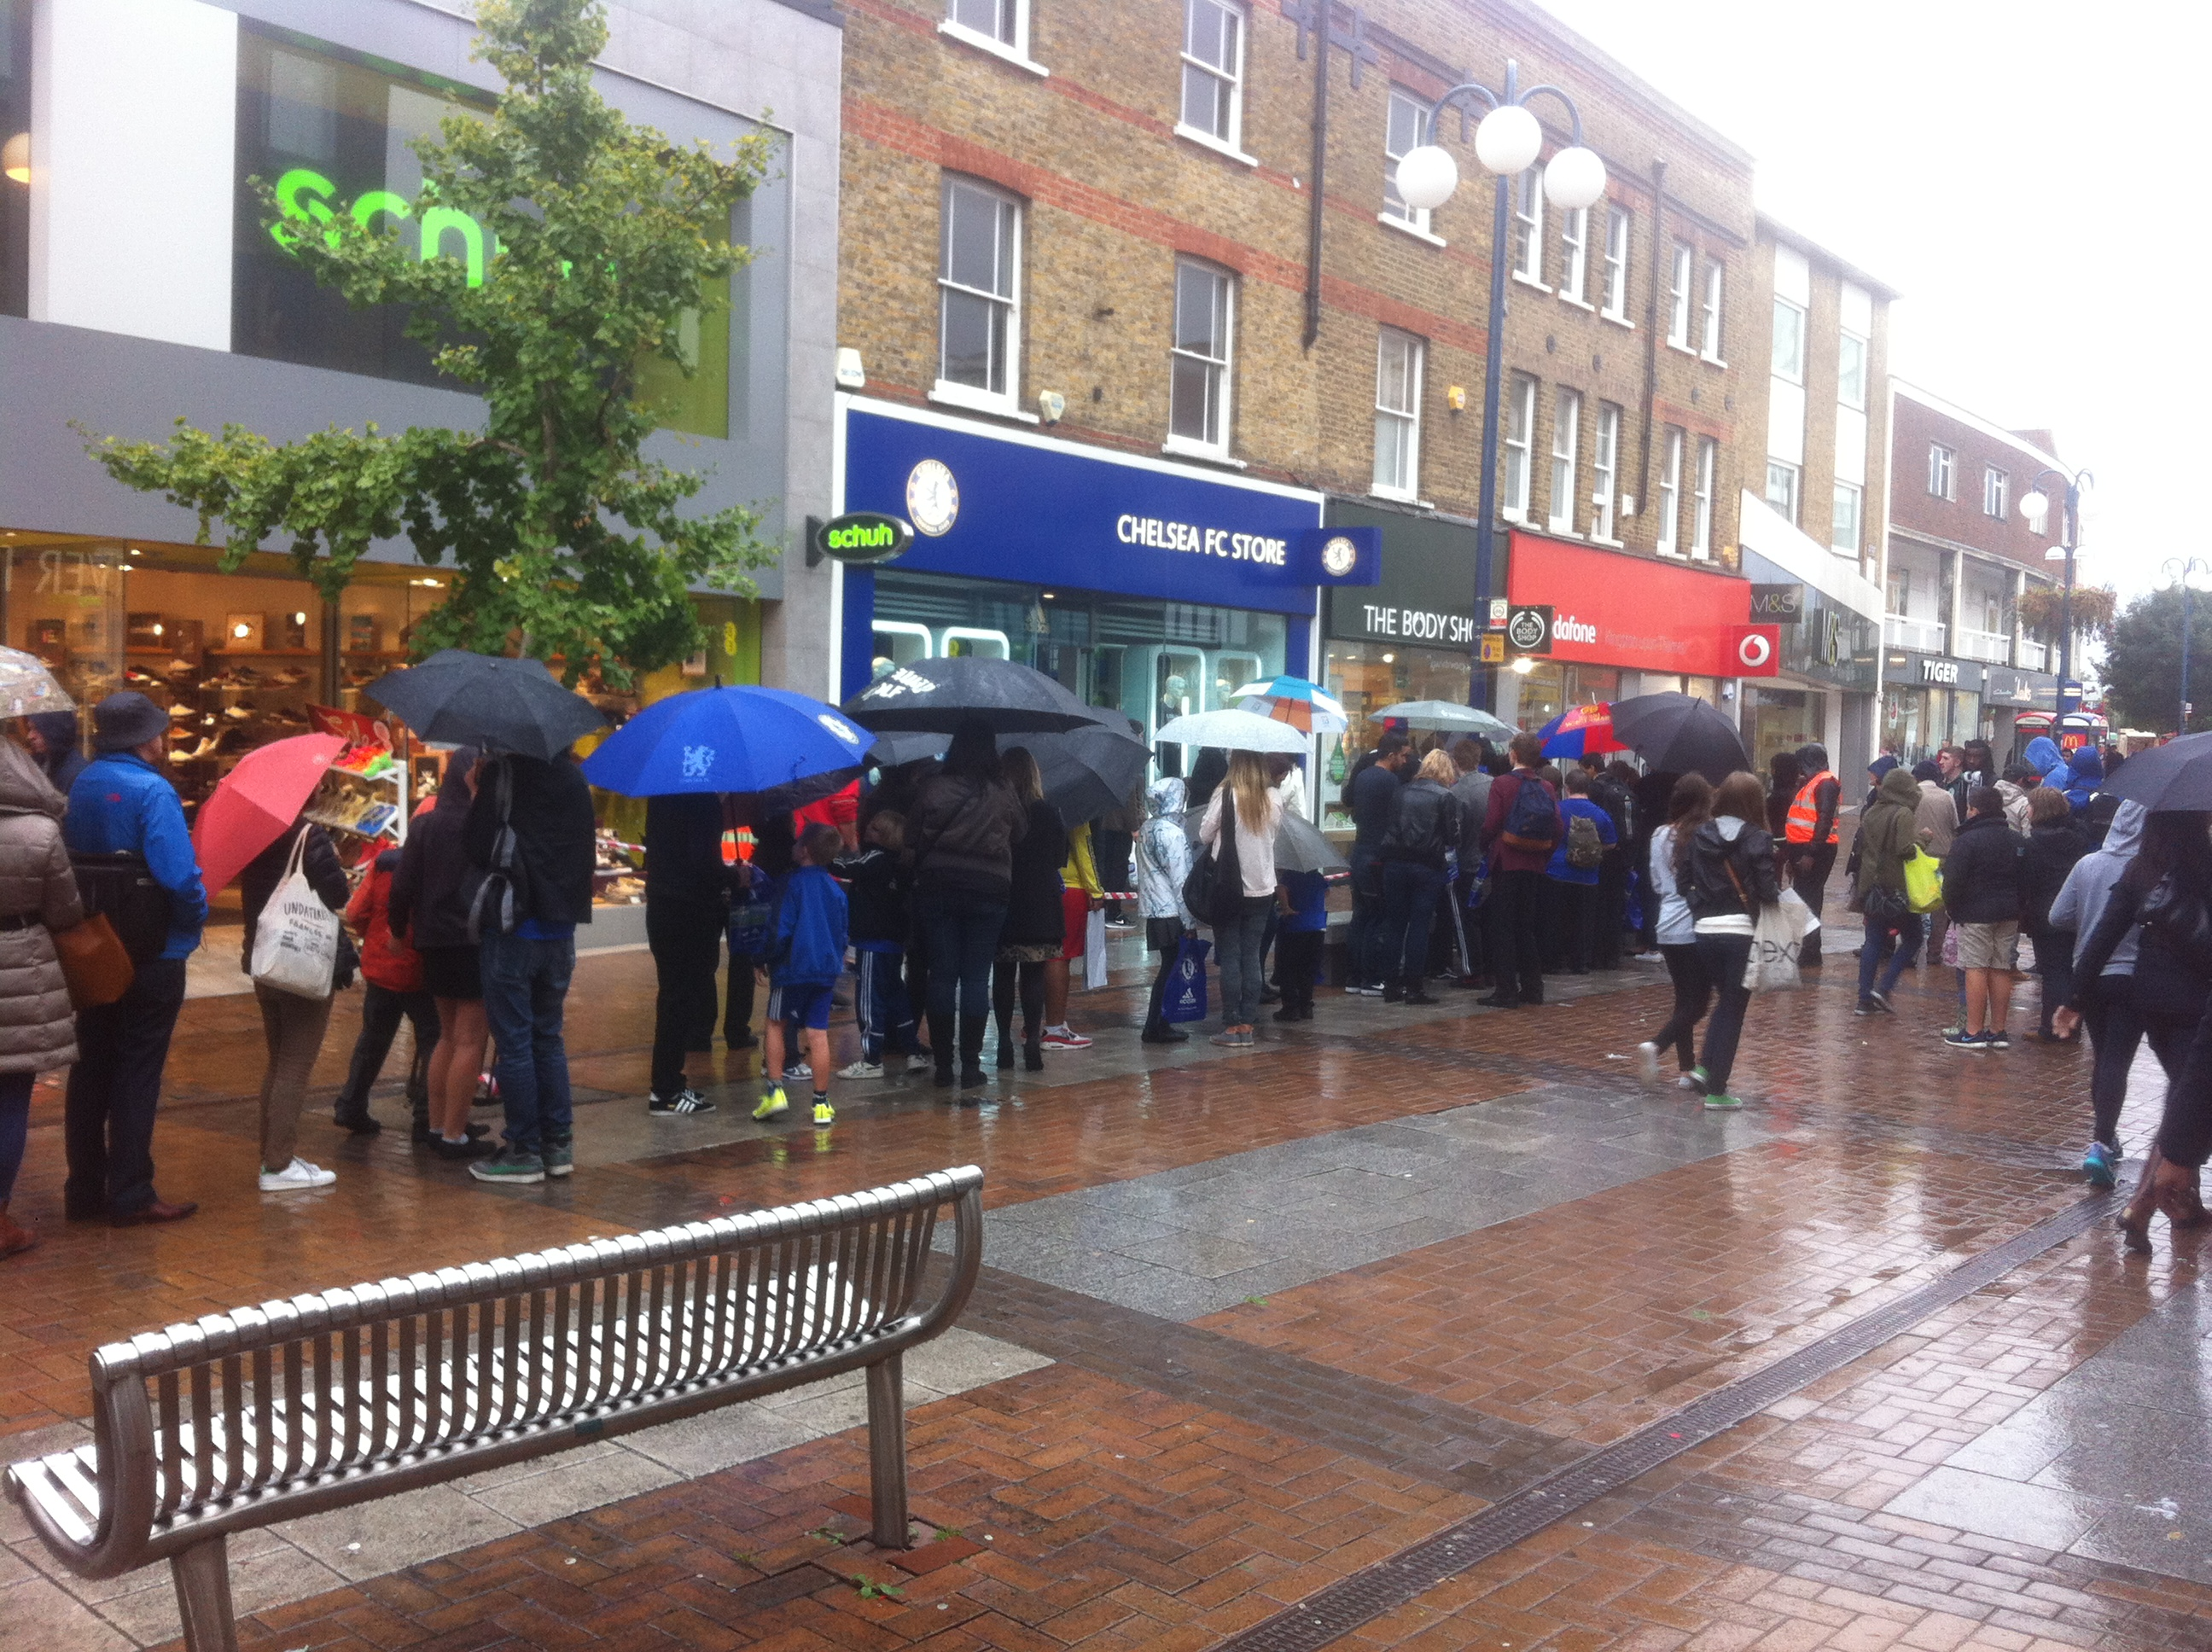 Disappointed Chelsea fans lining up in the rain